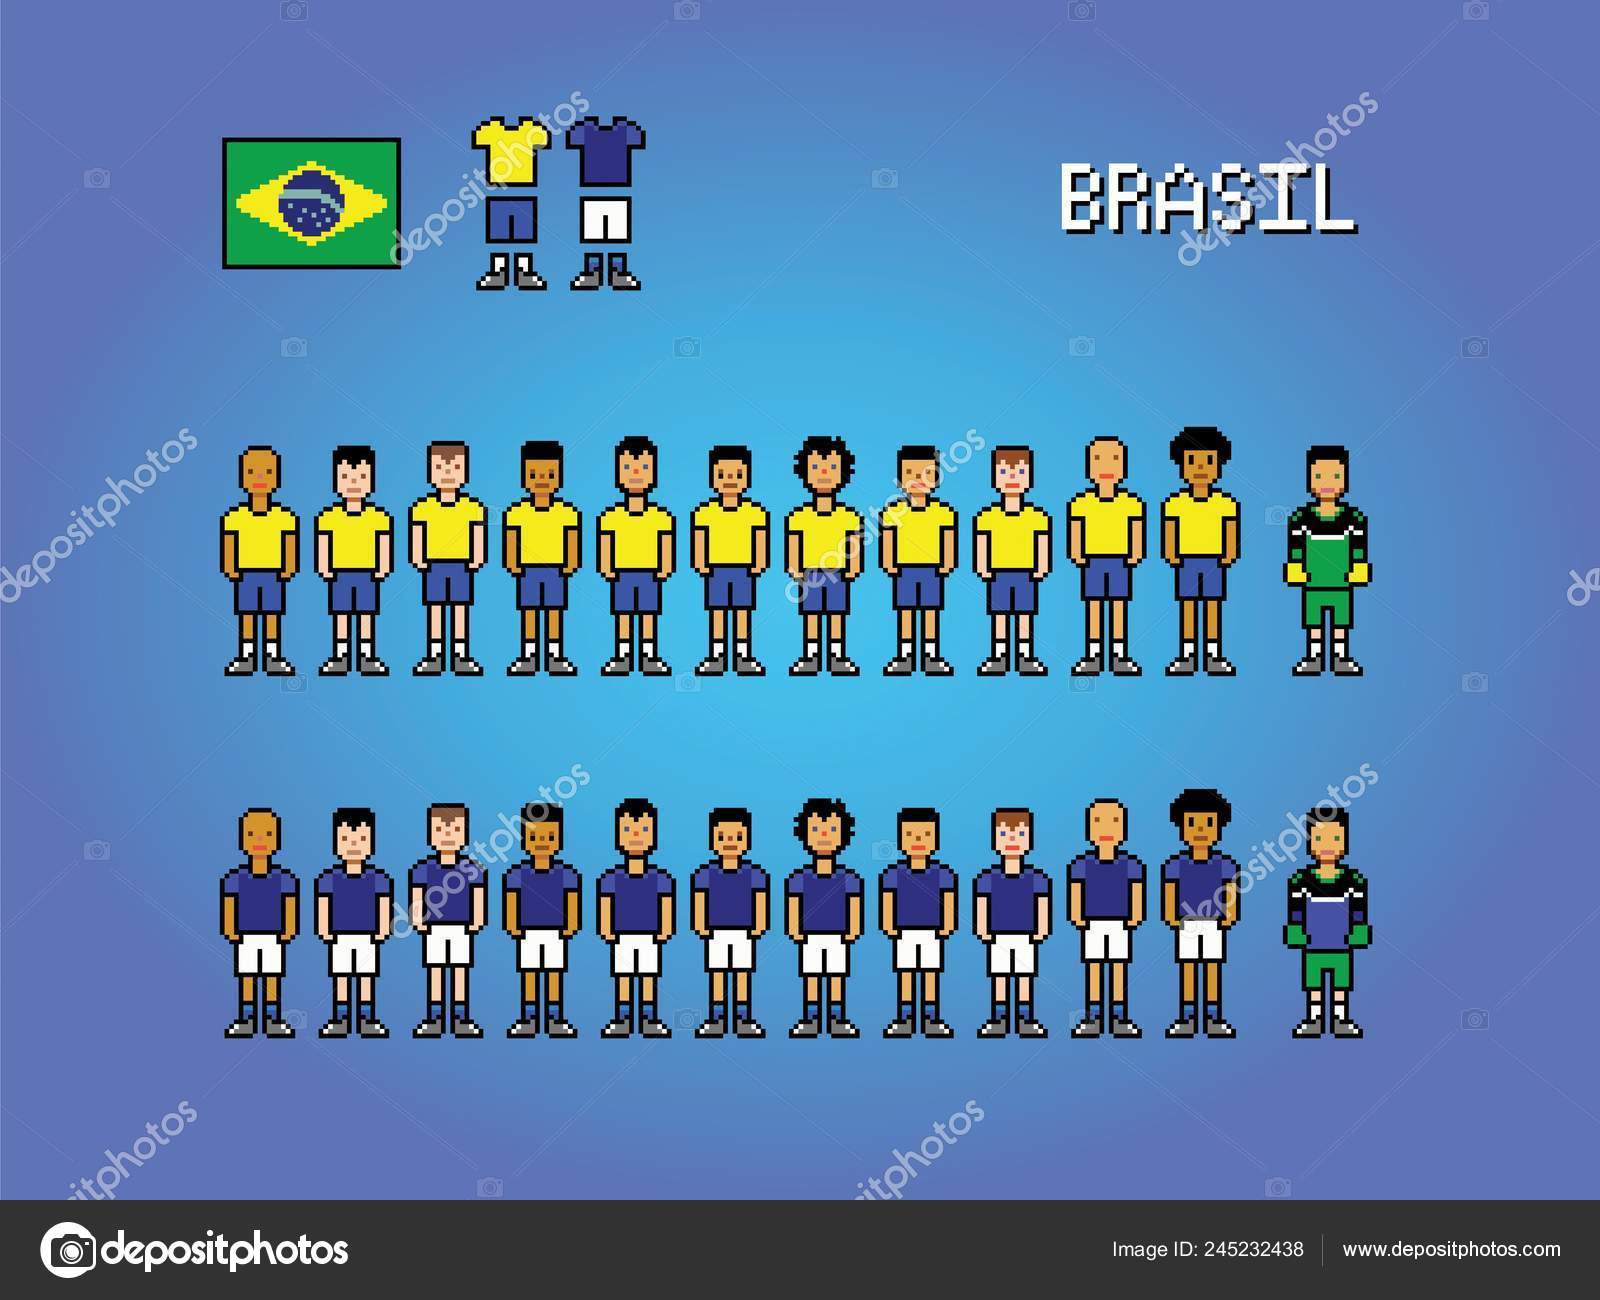 Brasil Football Team Pixel Art Soccer Game Illustration